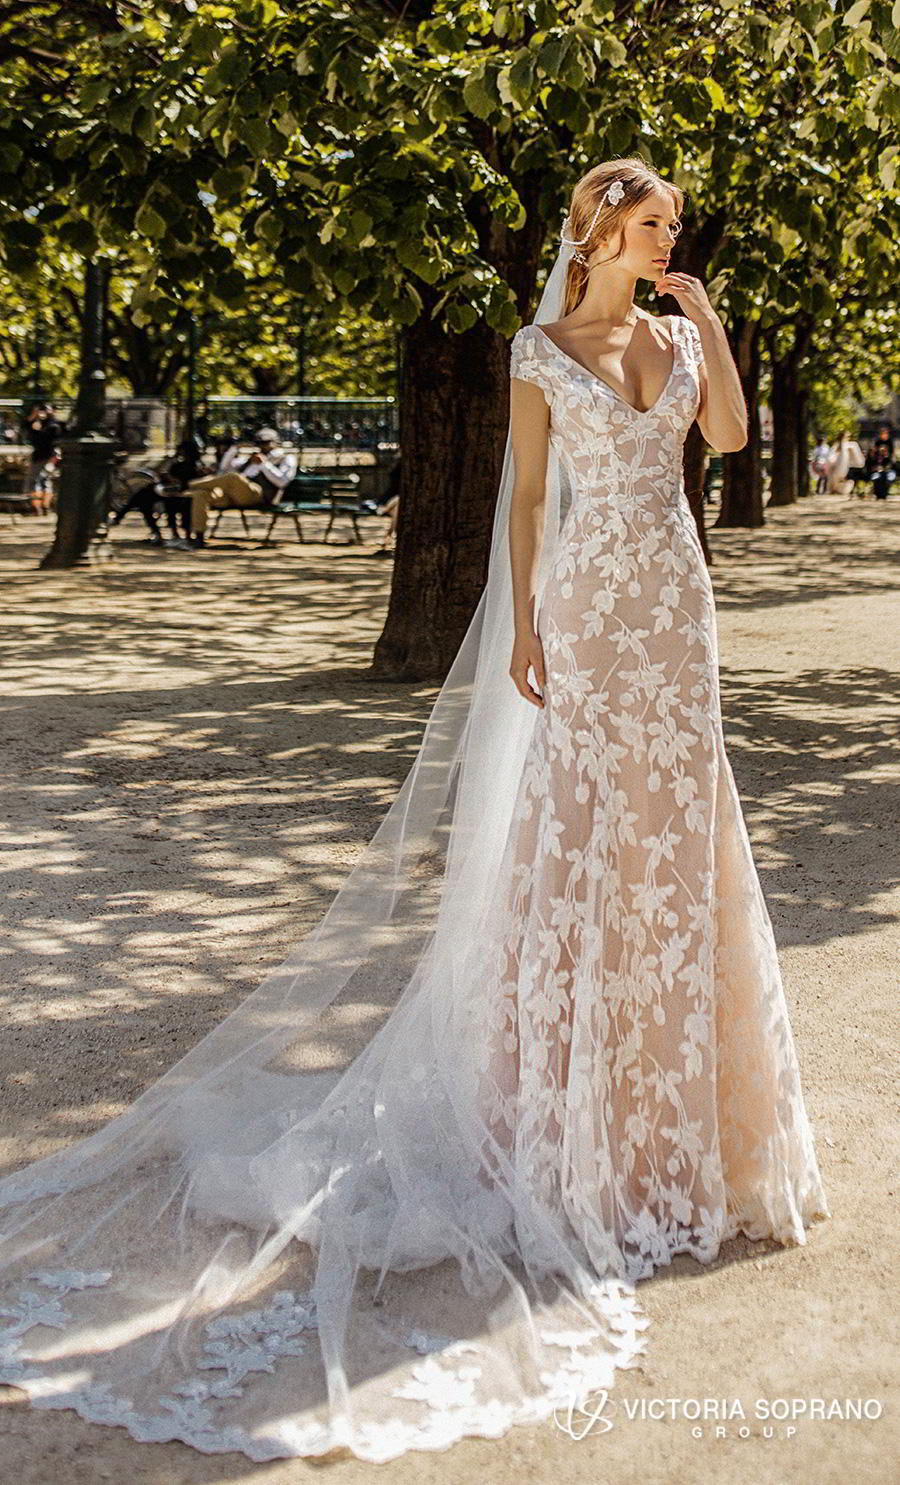 These Victoria Soprano Wedding Dresses Will Make You Swoon